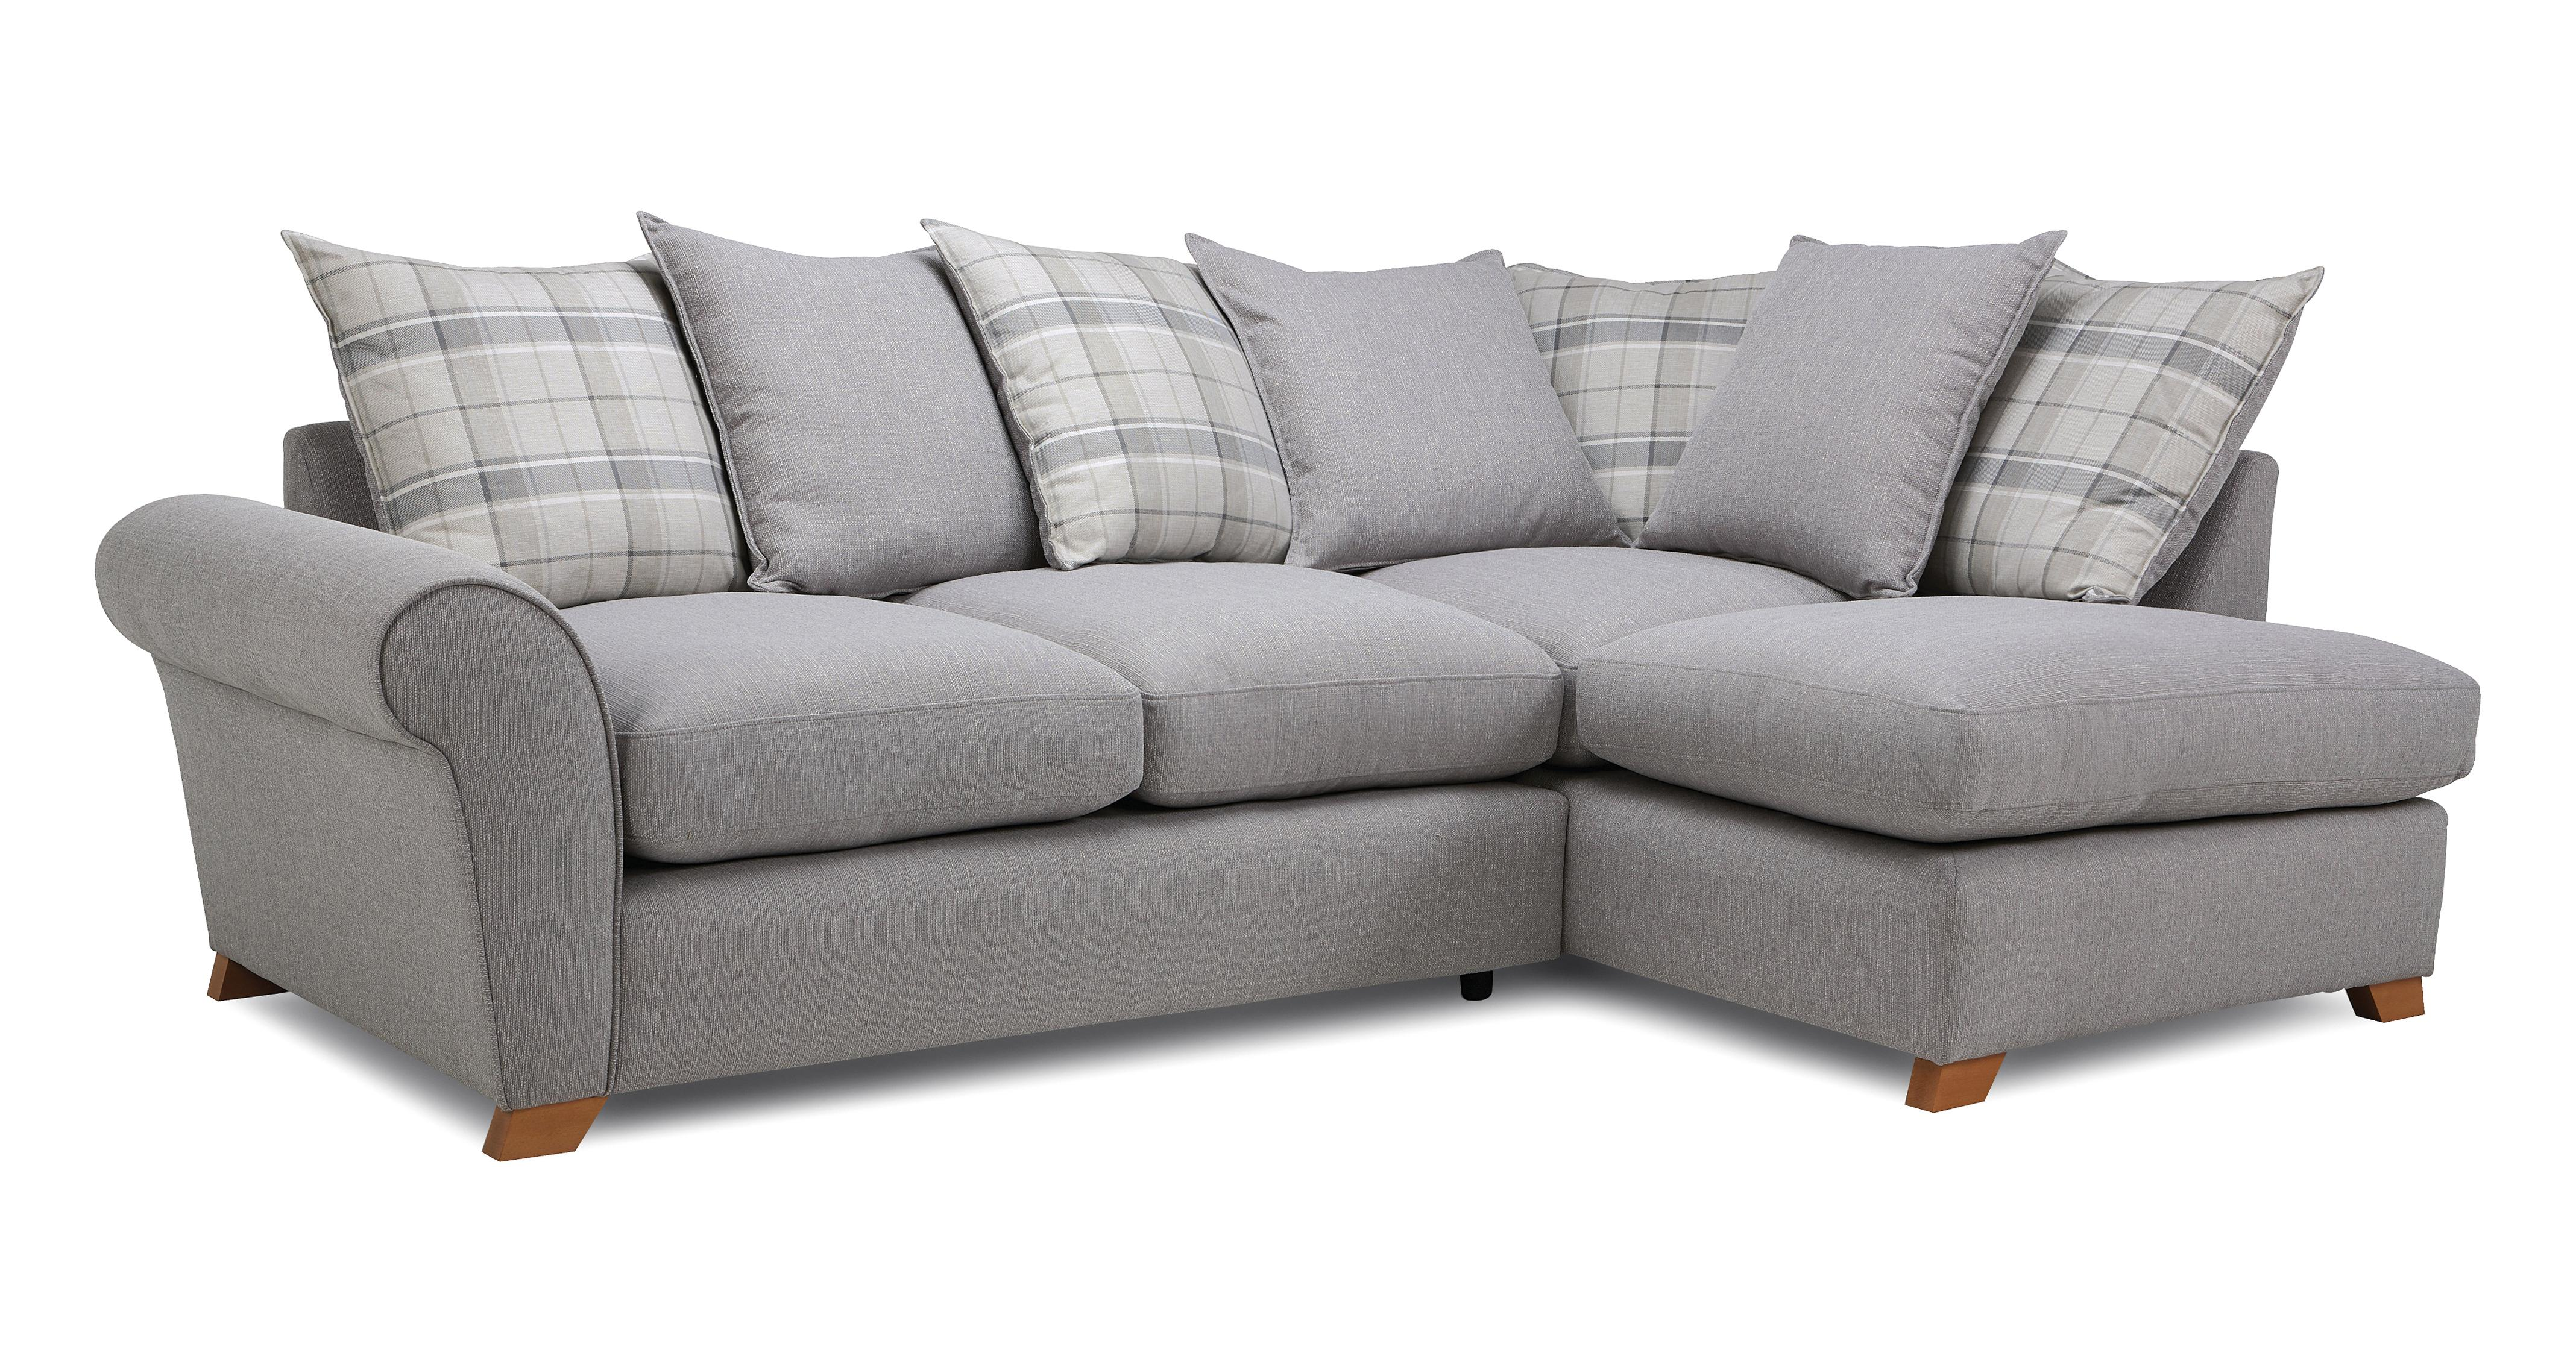 corner sofa dfs martinez kreeli queen sleeper reviews owen pillow back left hand facing arm